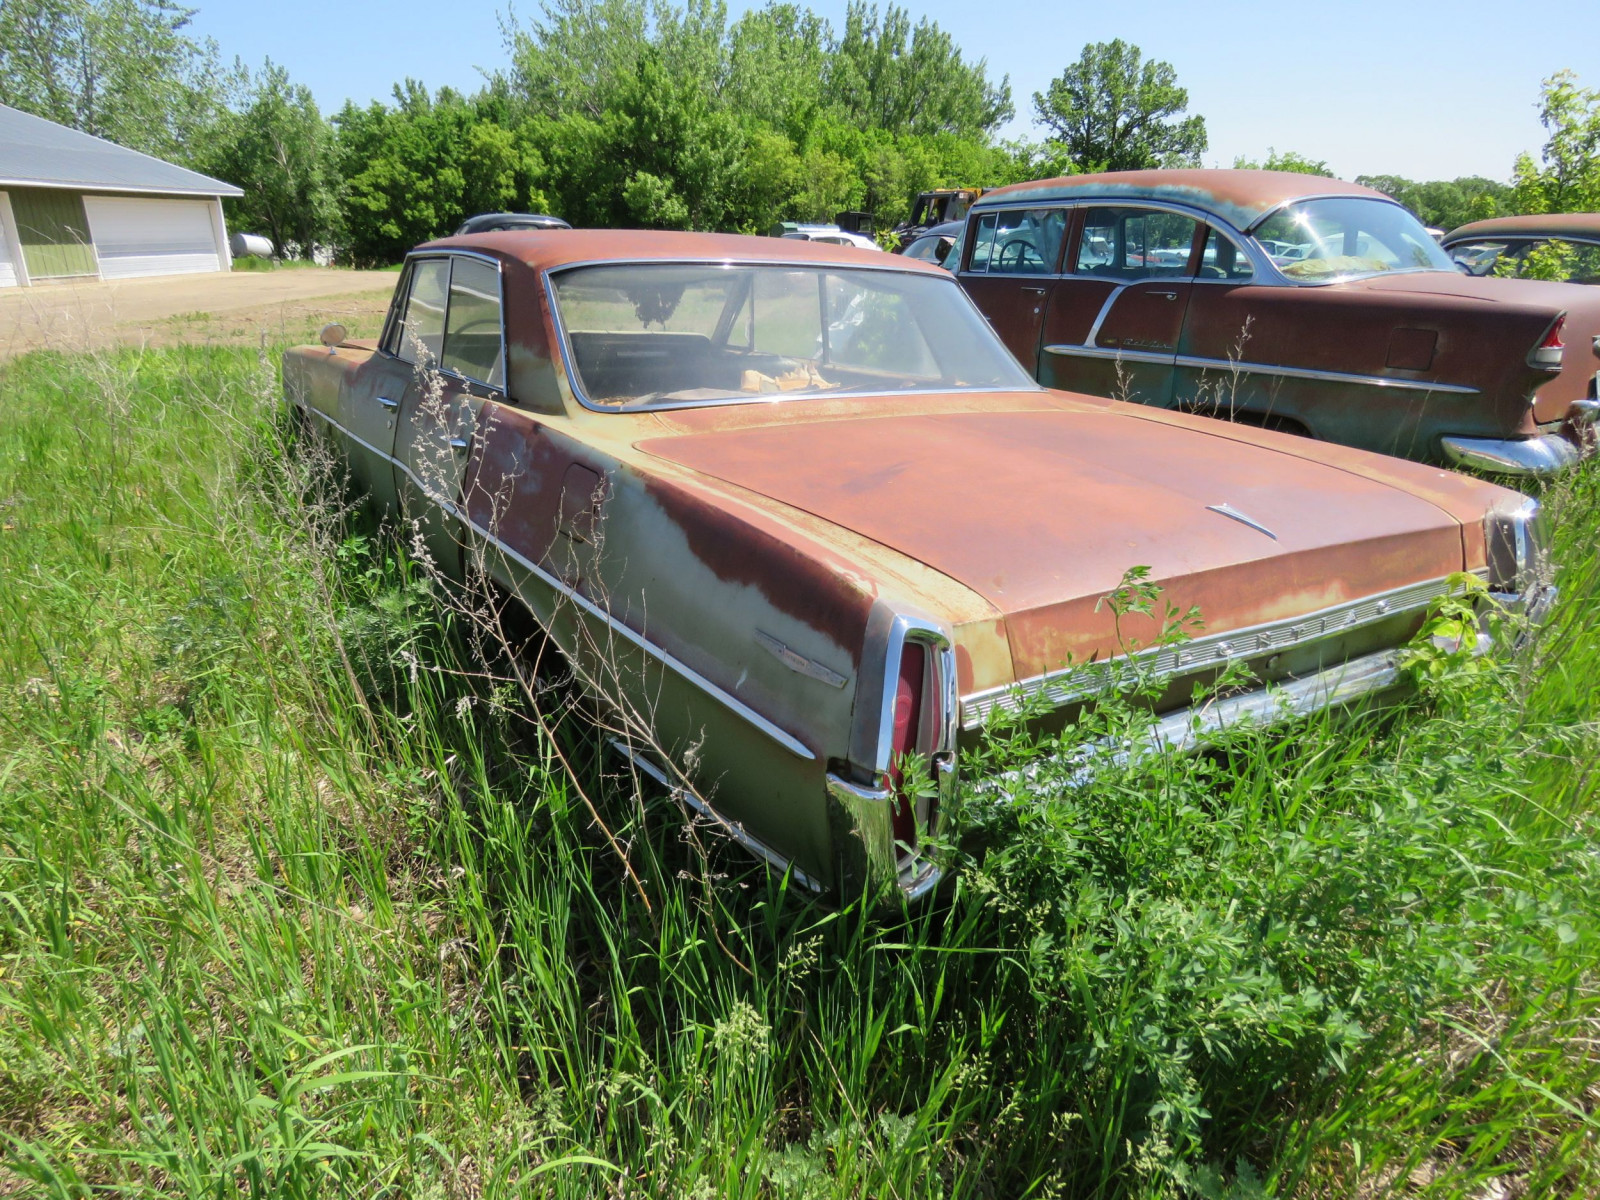 1964 Pontiac Catalina 4dr Sedan for Project or parts - Image 6